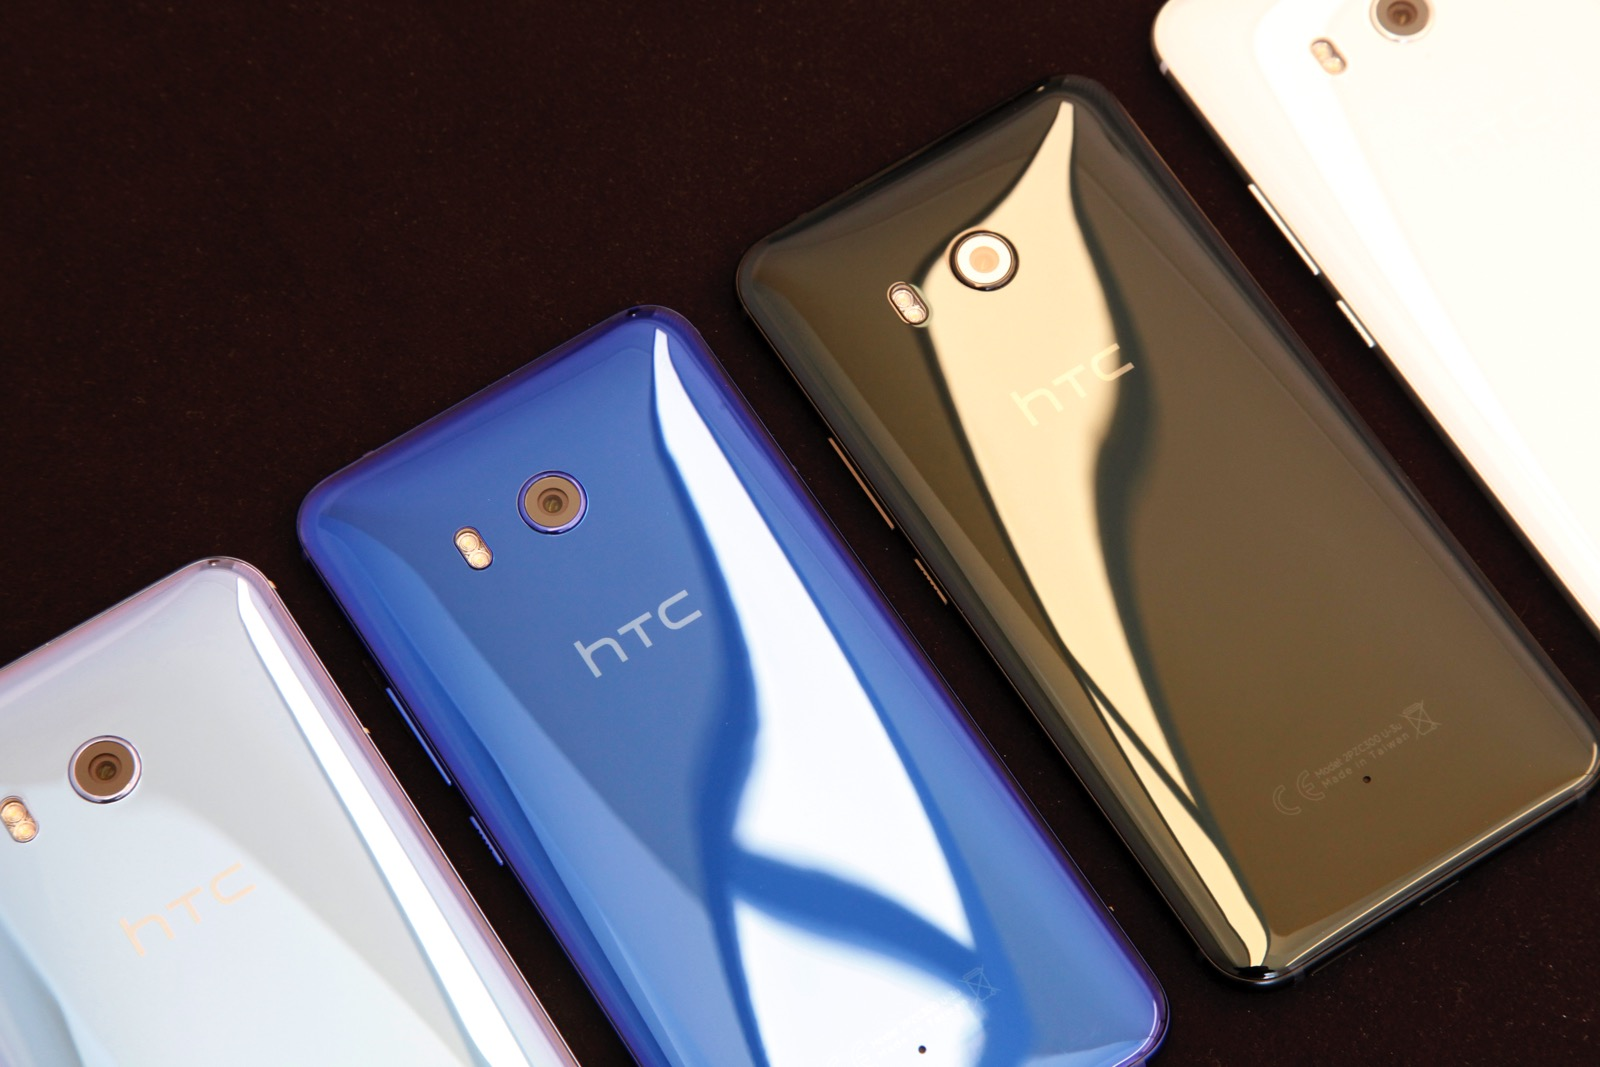 HTC U11 Hands-on: Taking on the Galaxy S8 in Style